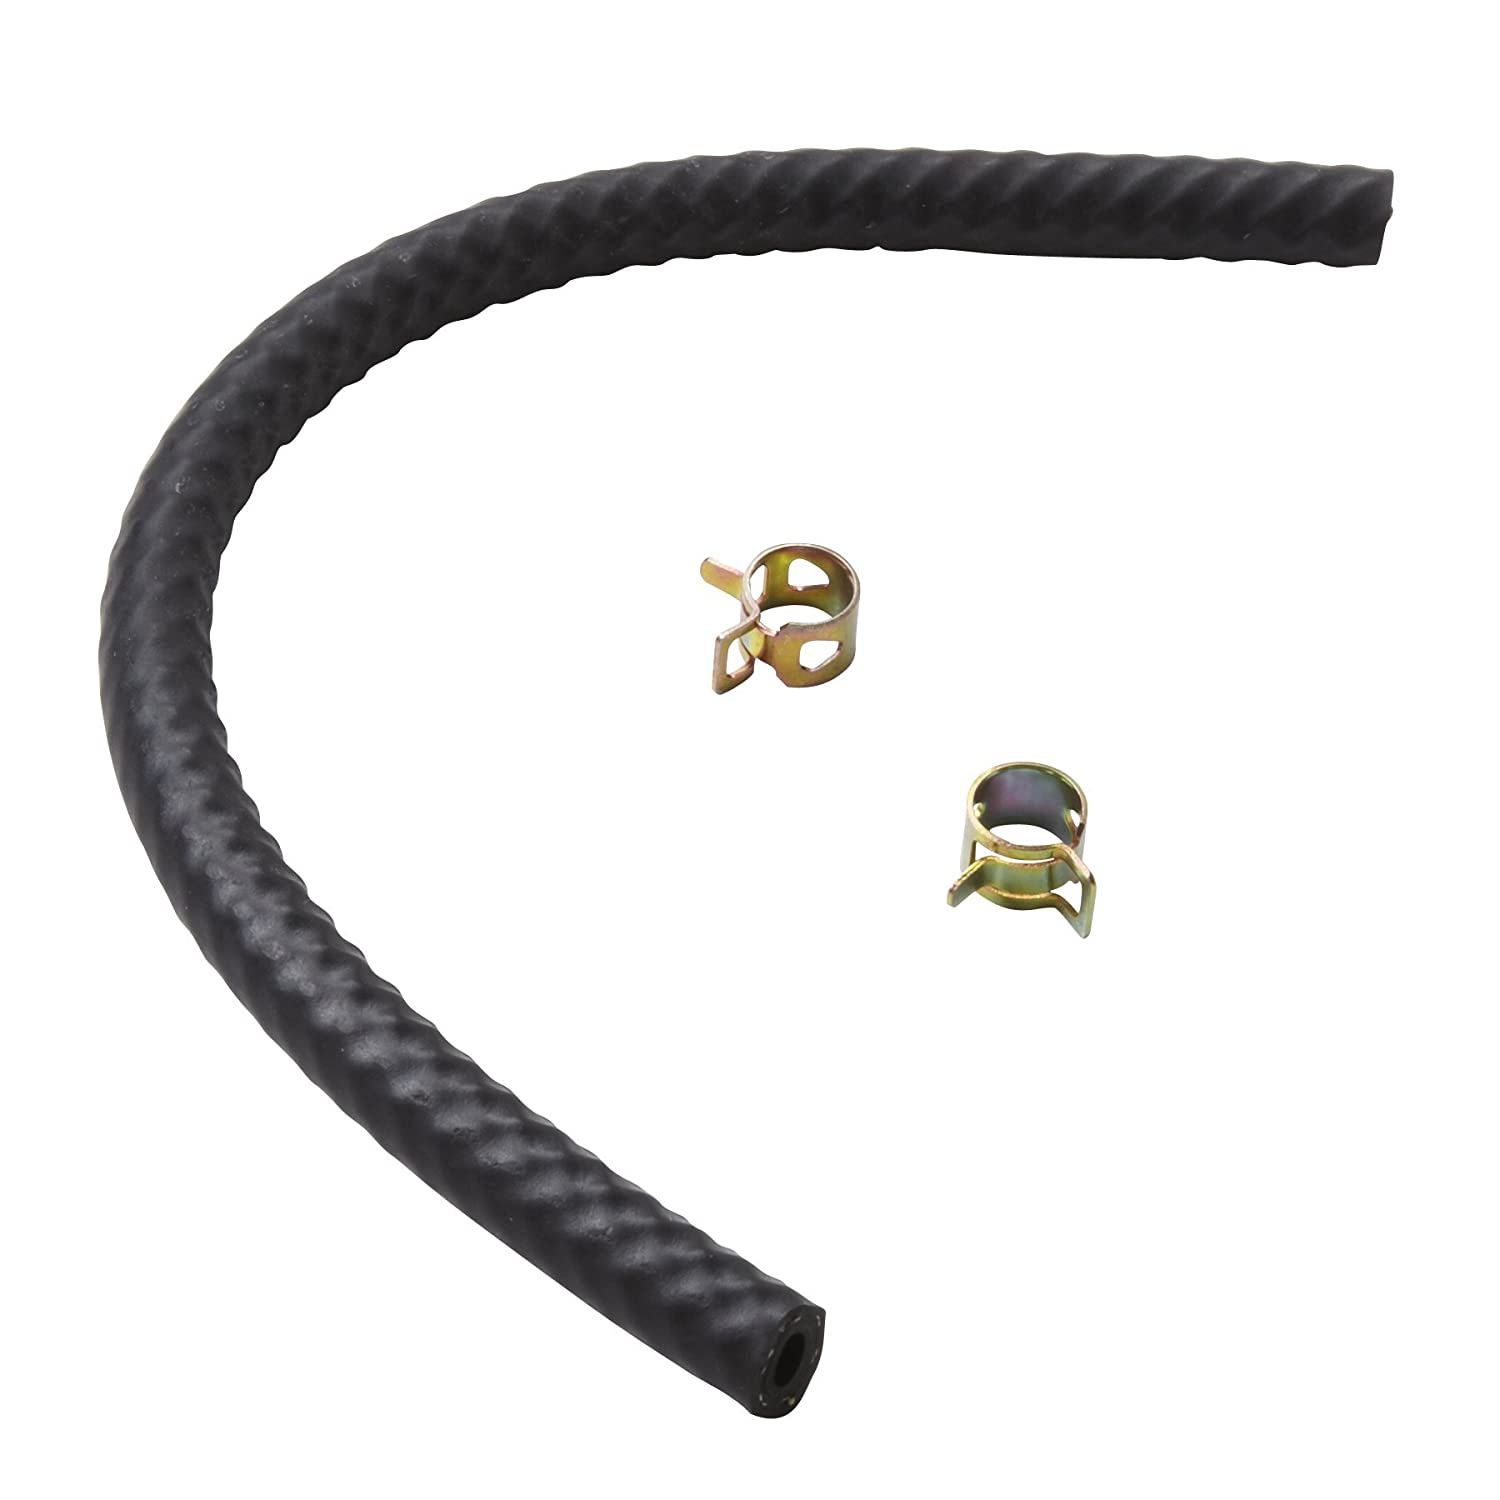 Briggs Stratton 716122 Fuel Line For 4 55 And 9 Hp Vanguard Filter Engines Shut Off Valve To Tank Garden Outdoor